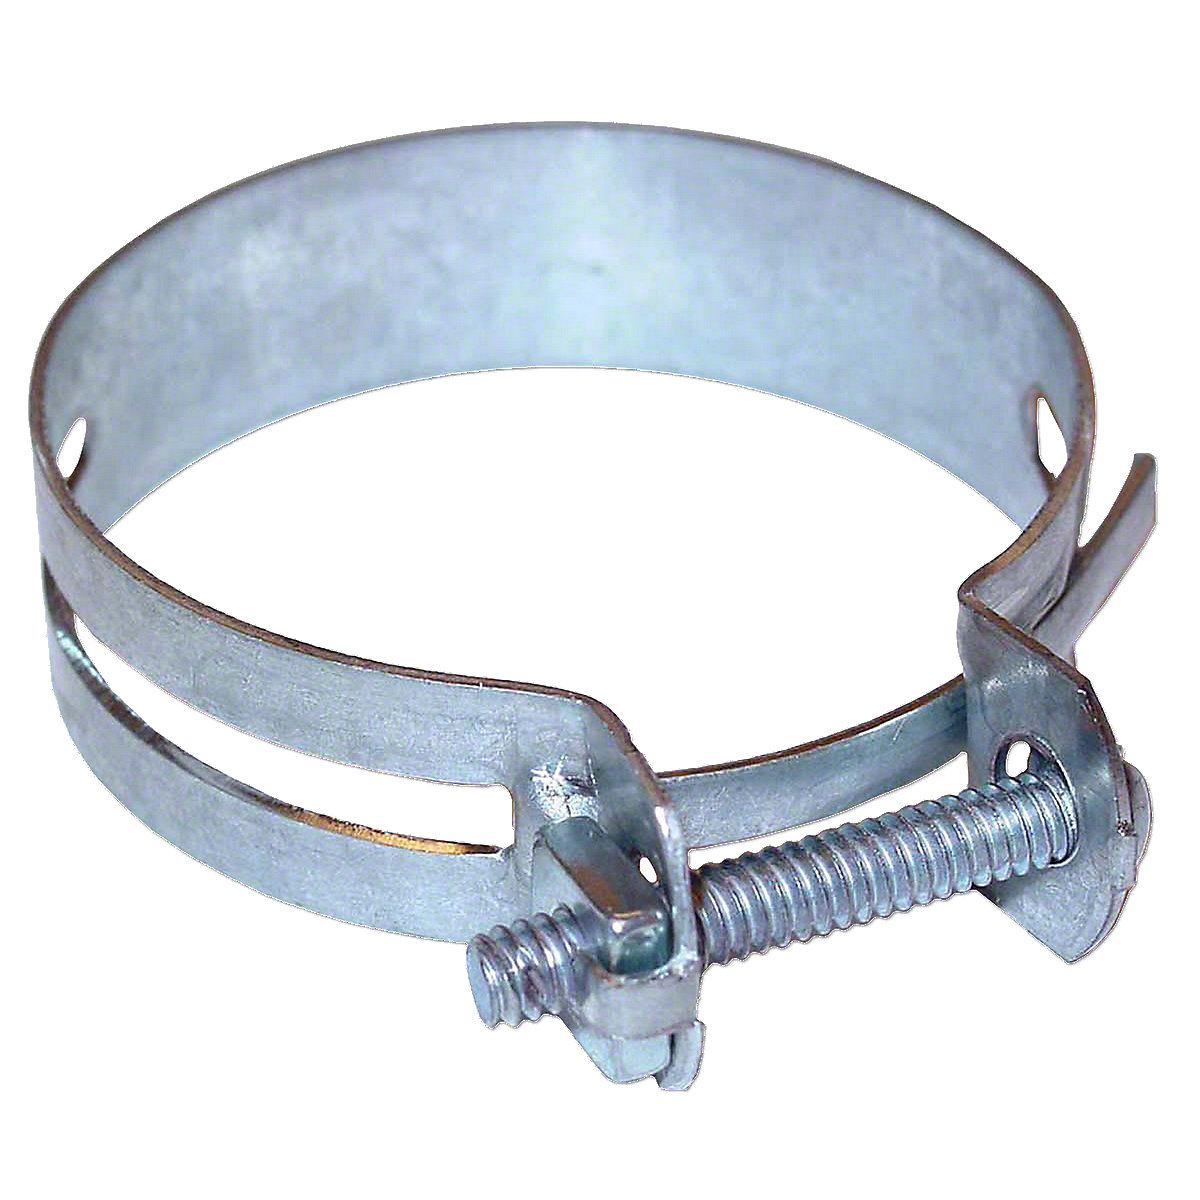 Radiator Hose Clamp For Allis Chalmers: D17, WC, WD, WF, WD45.